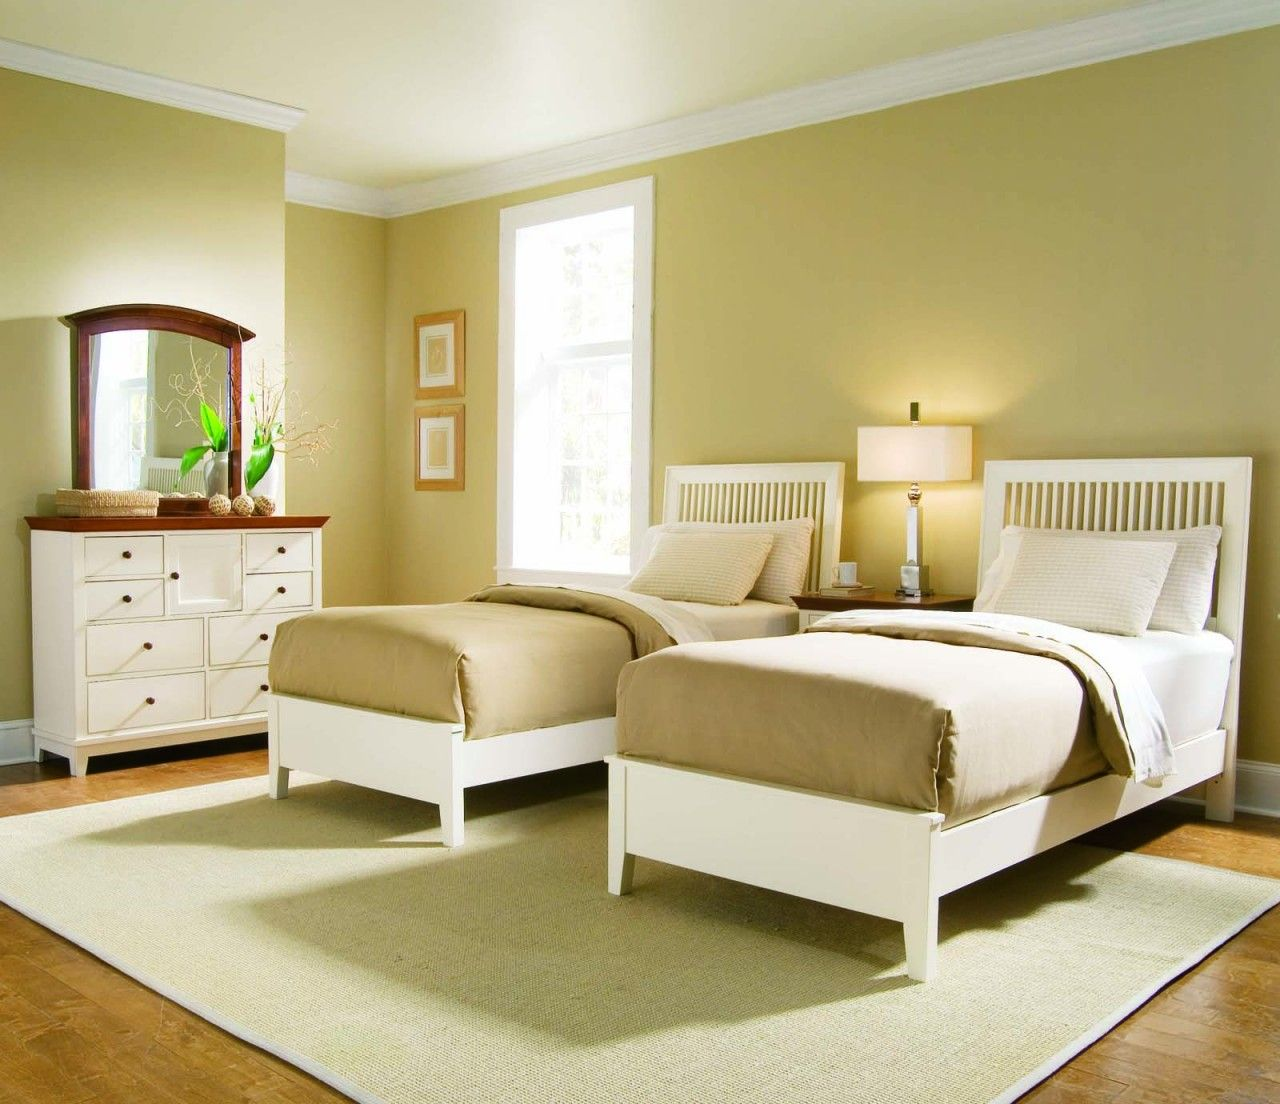 Simple Twin Bedroom Set Idea For Girls With Golden Brown